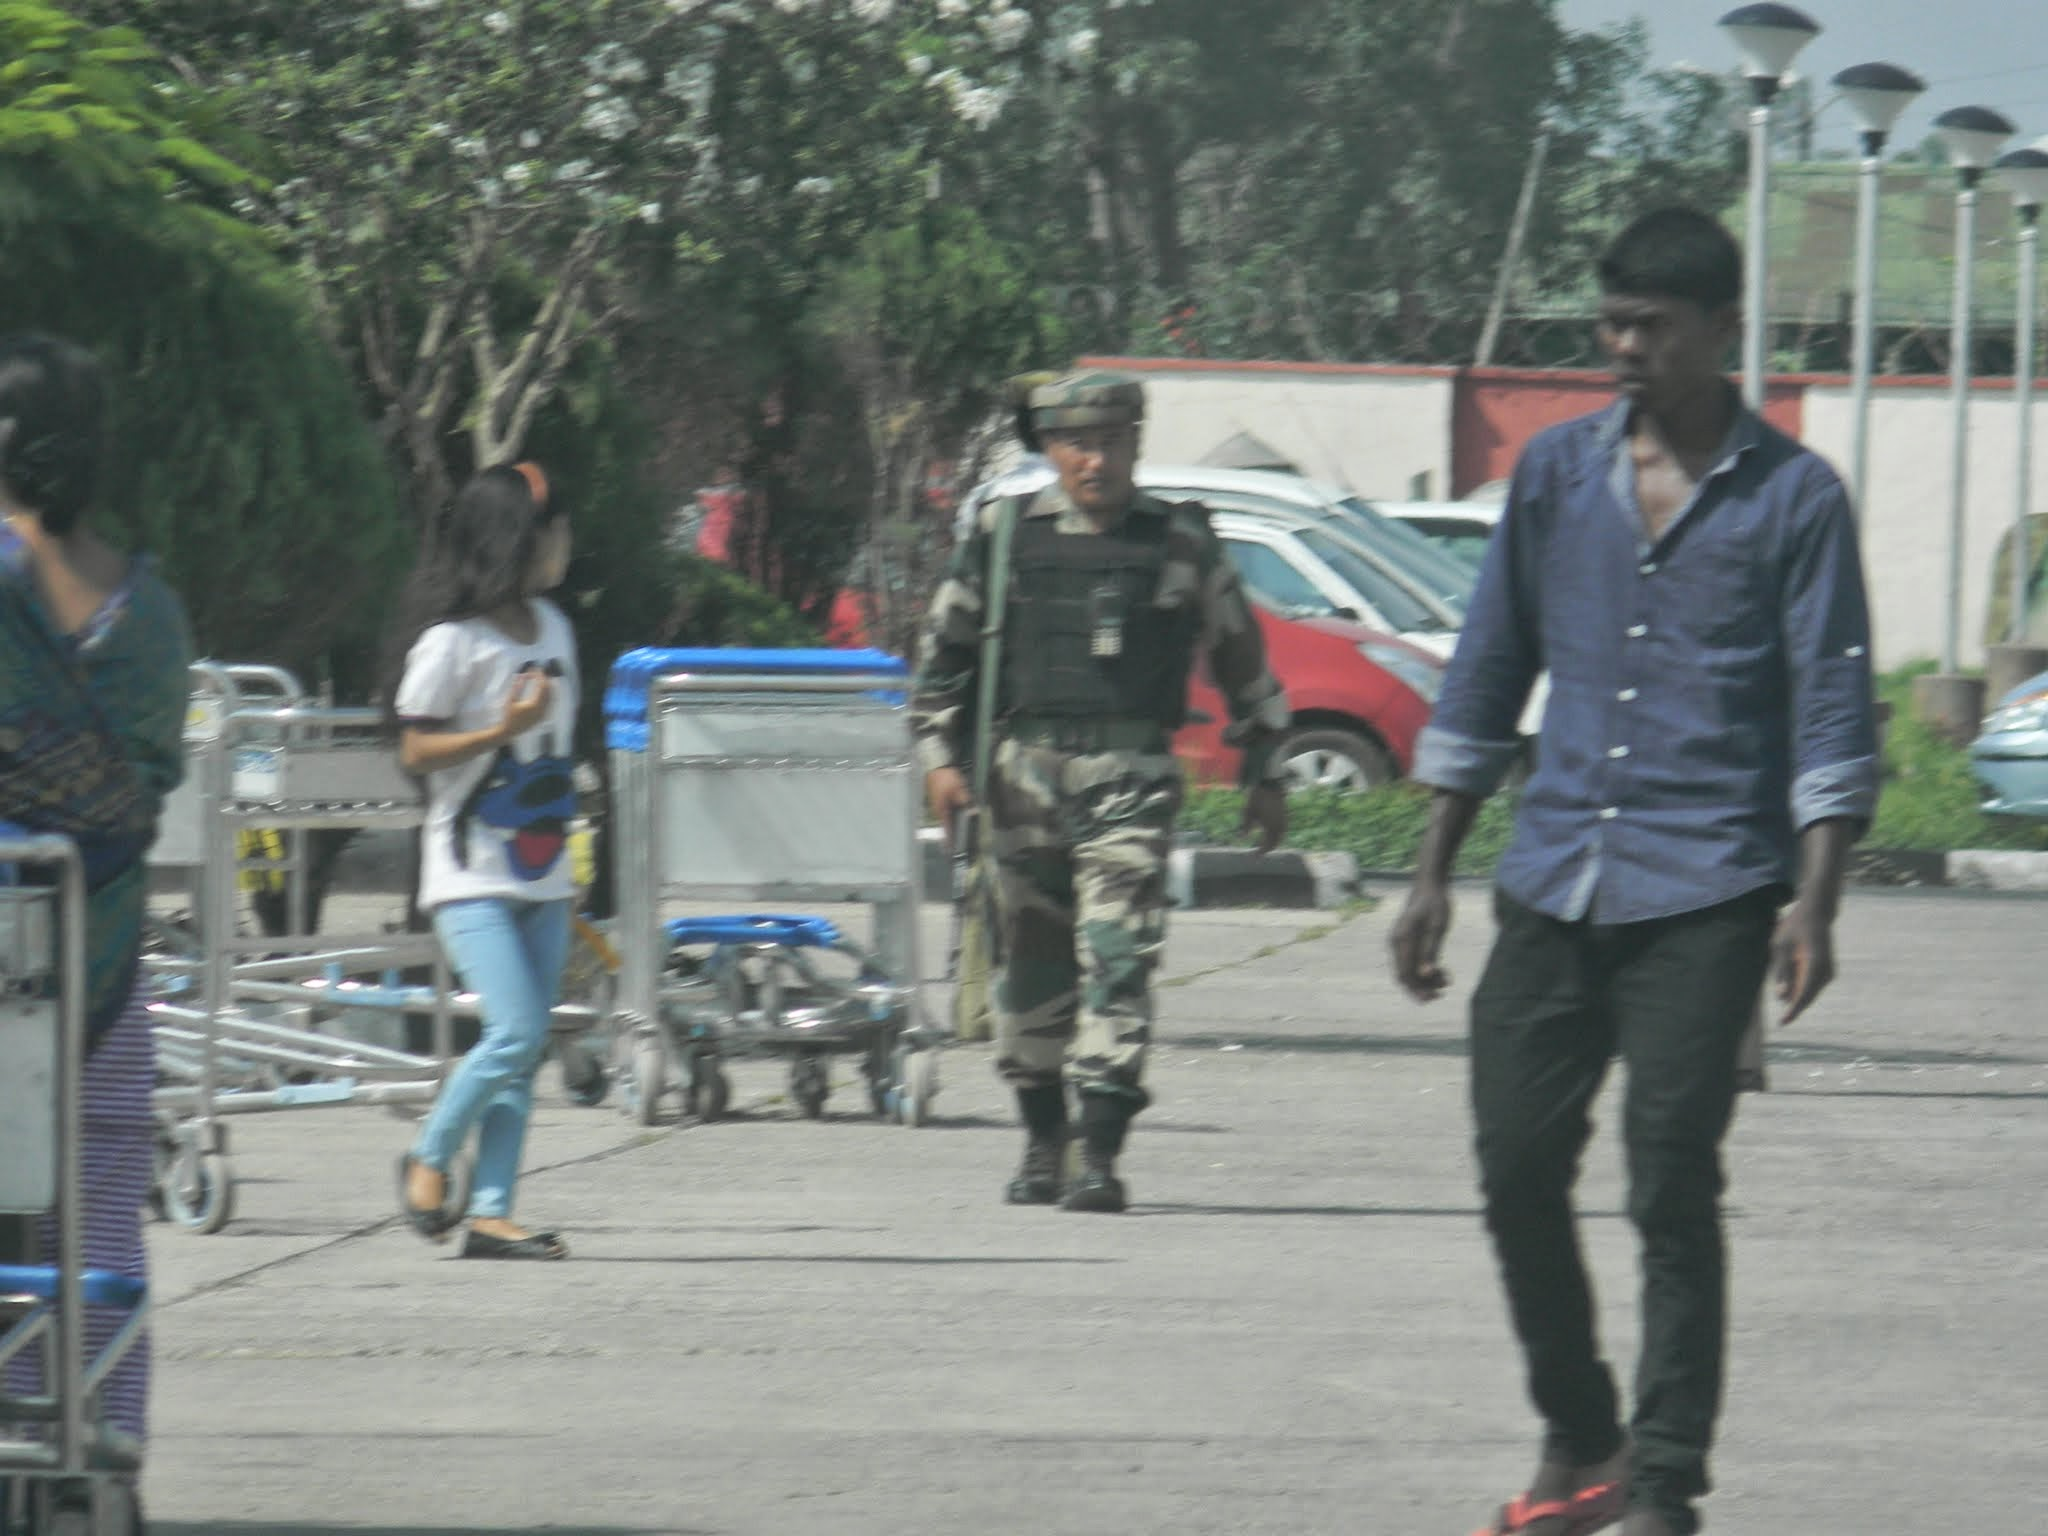 Photo: Security forces can be seen everywhere in Manipur.